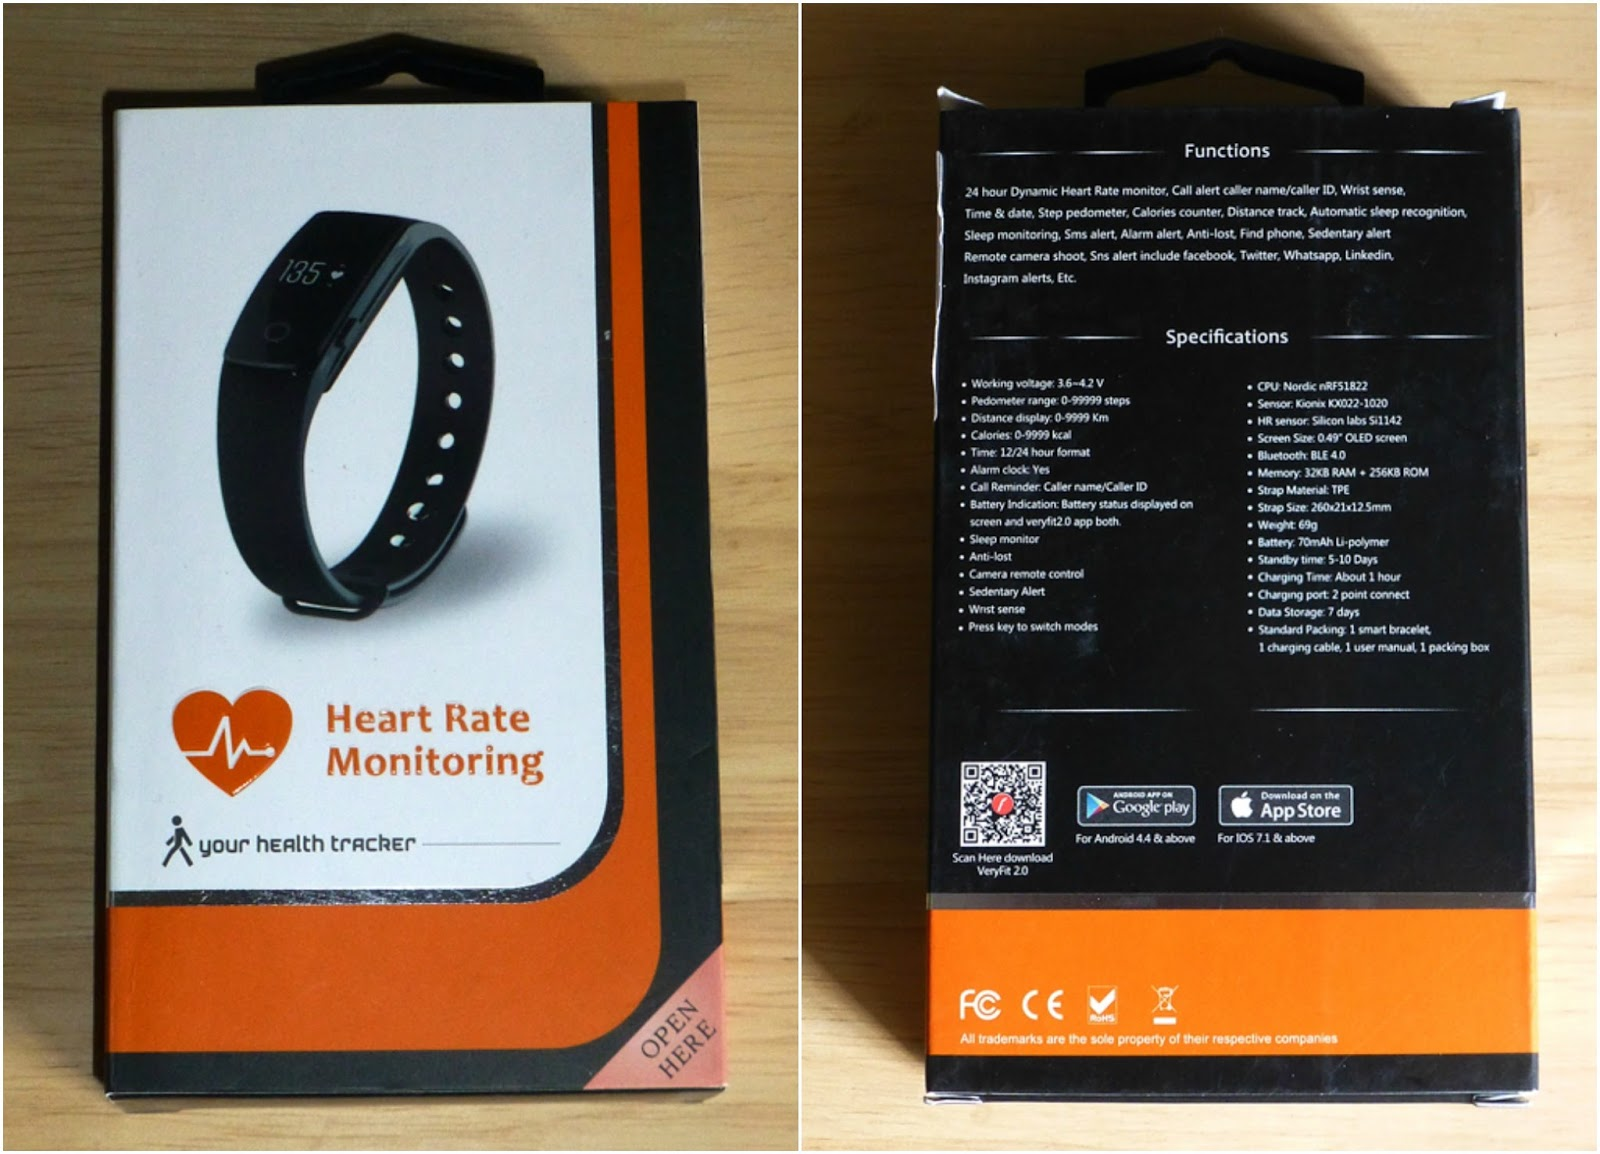 Veryfit 2 0 Smart Watch heart rate monitor Review | Gadget